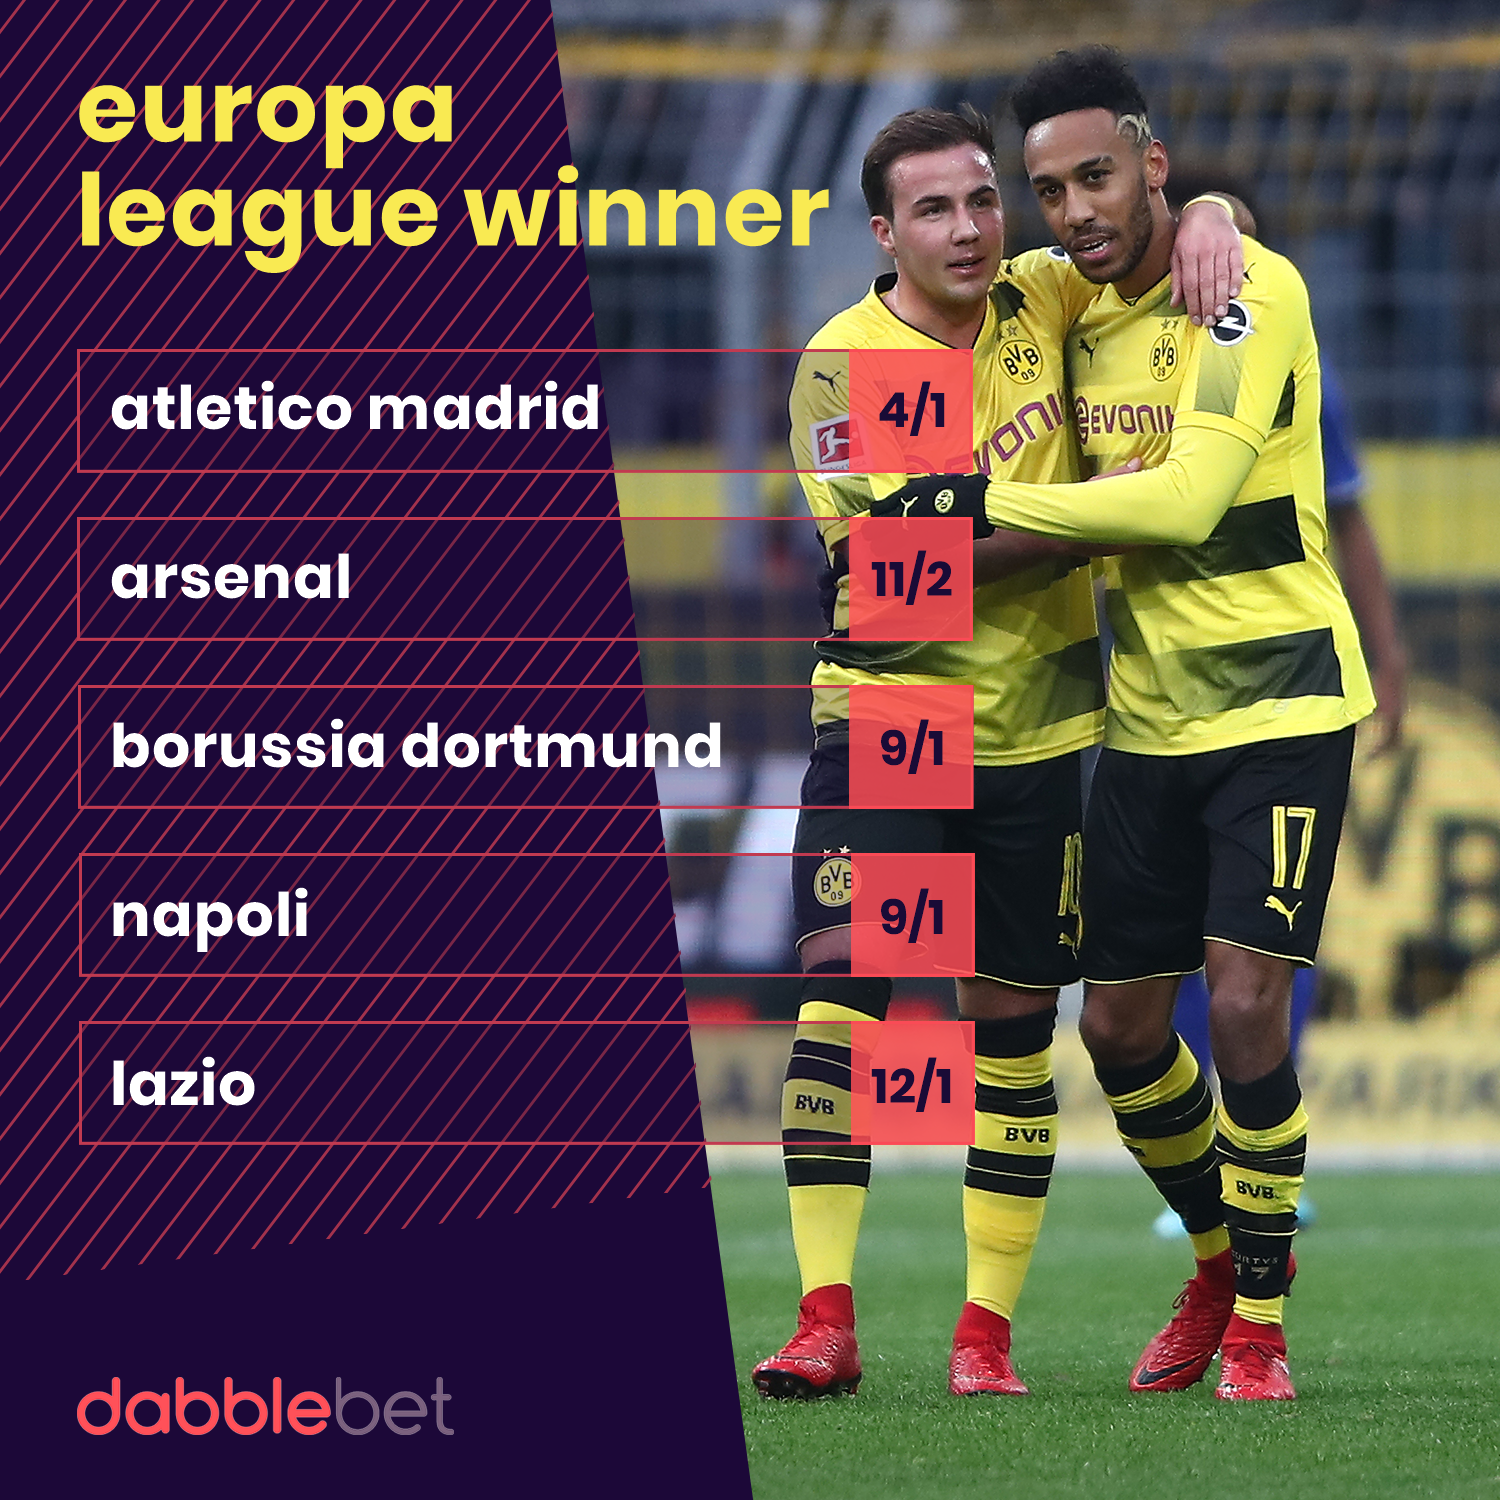 Europa League odds 11-12 graphic